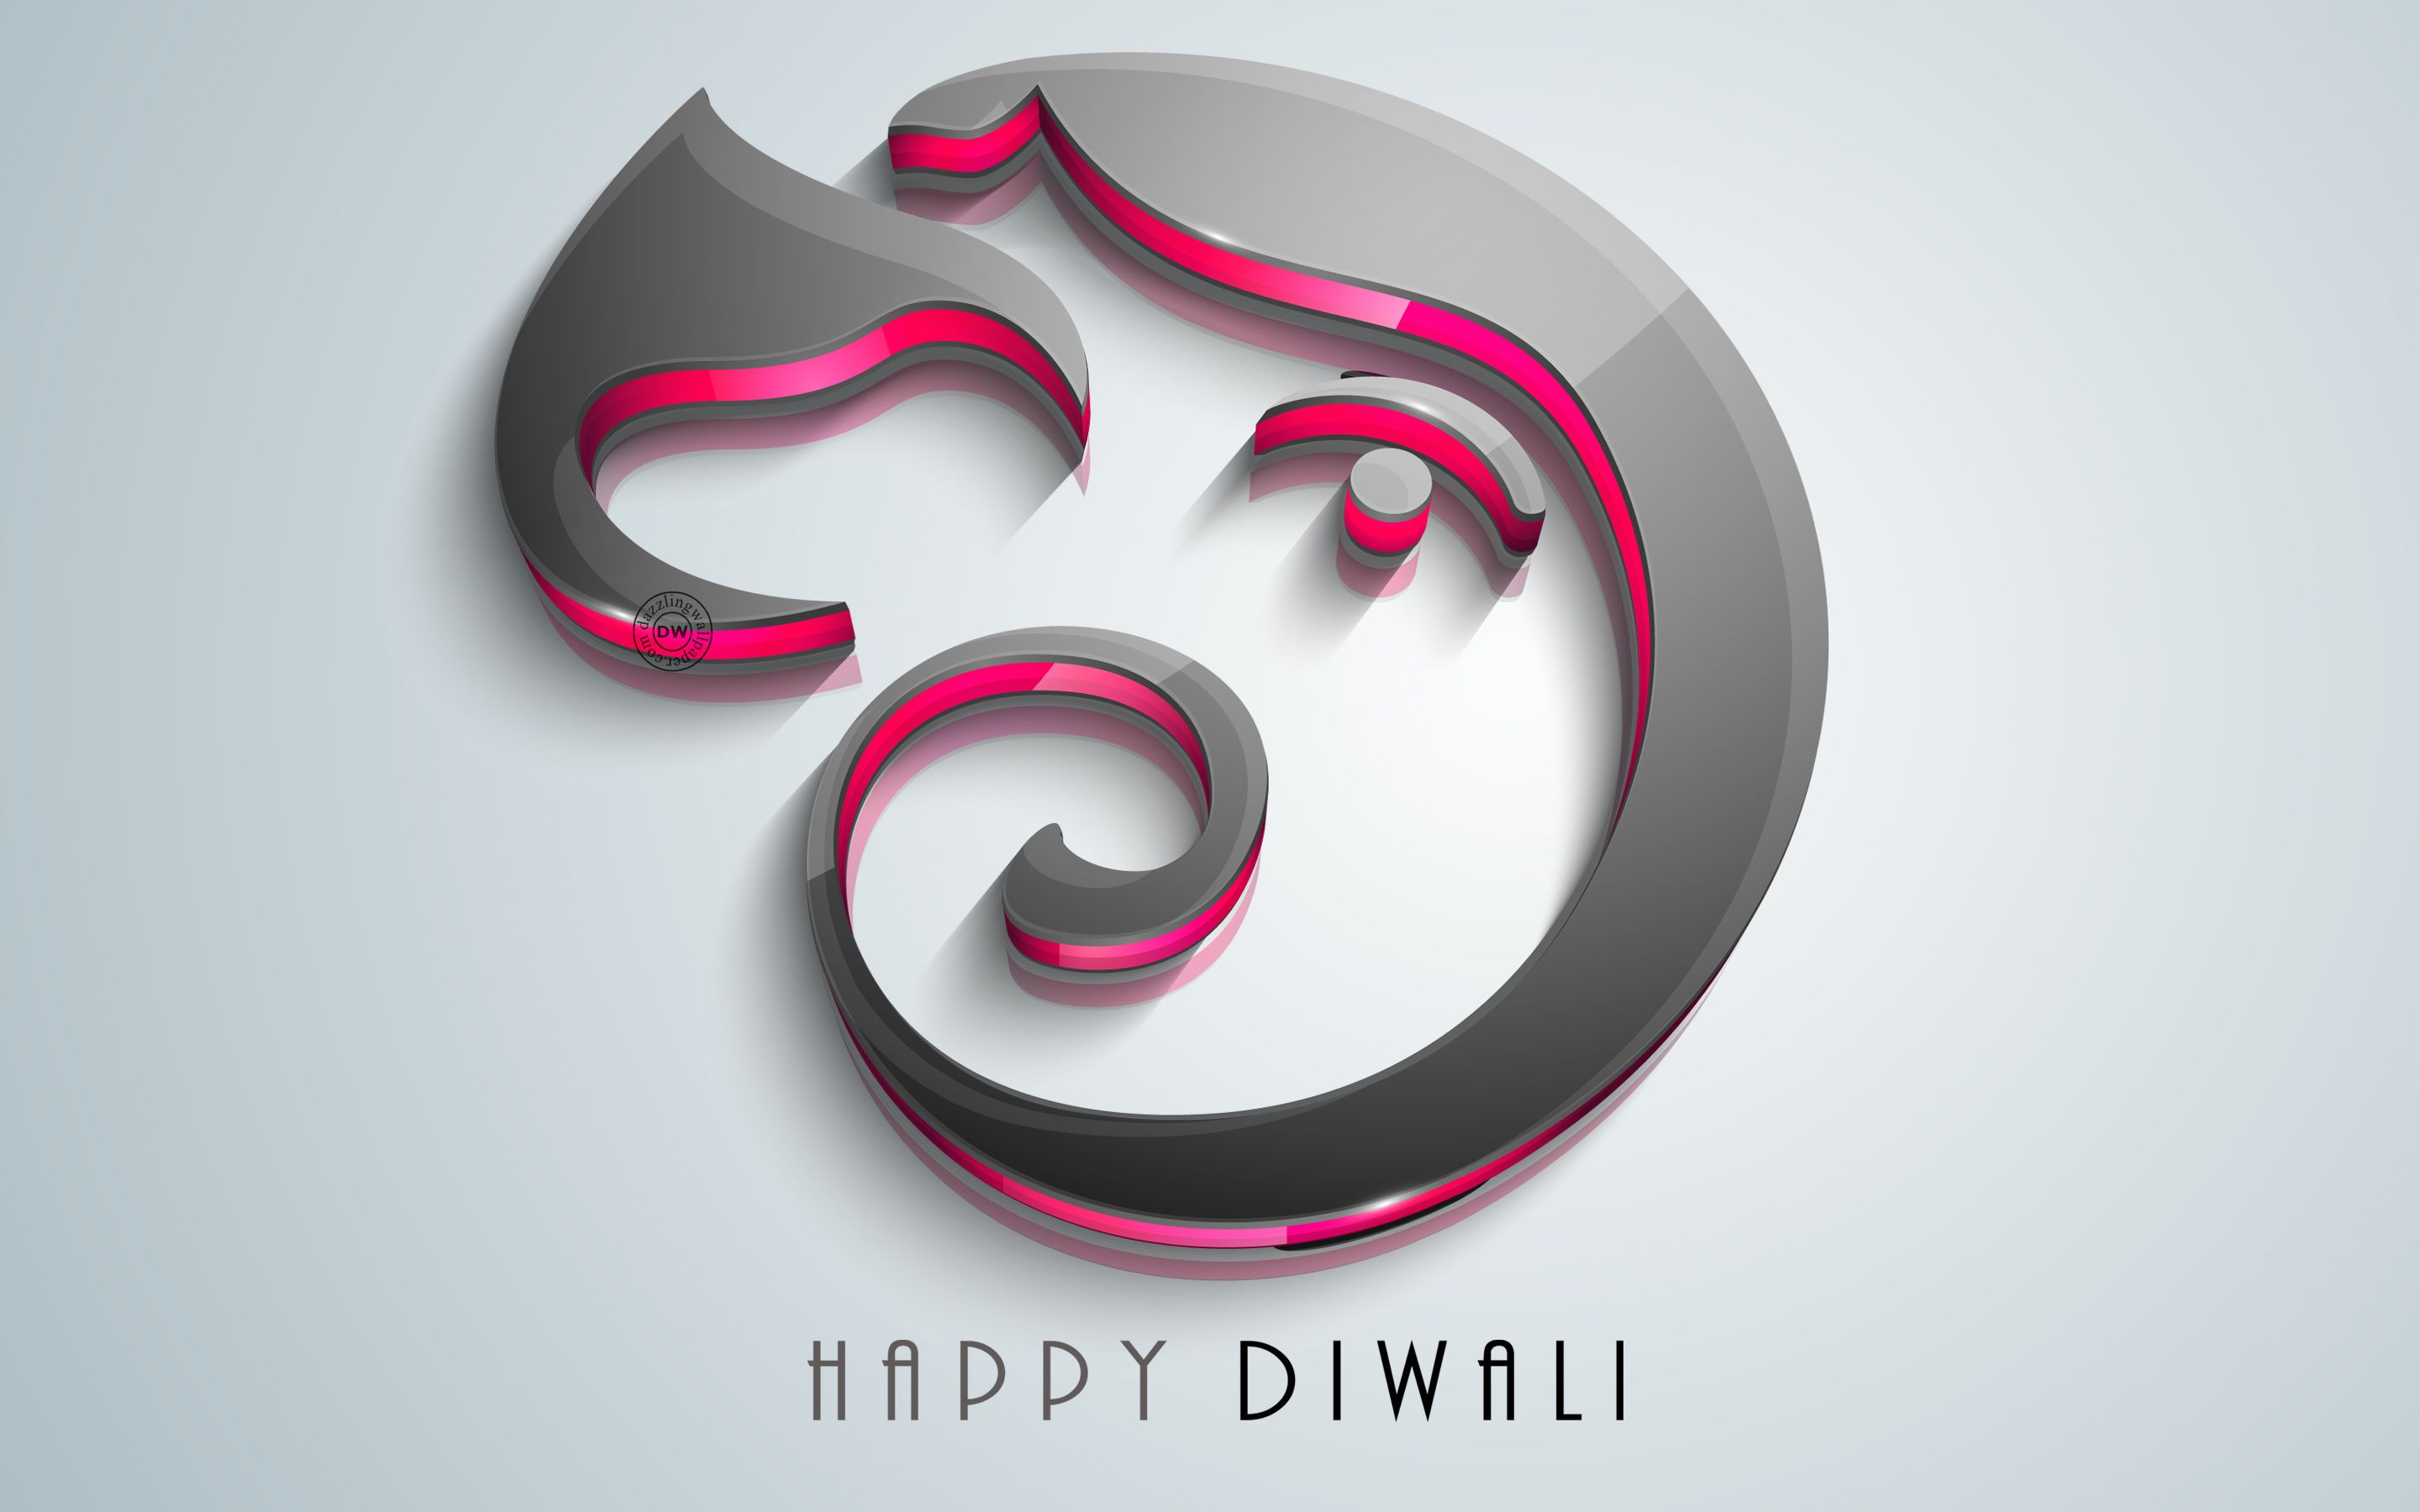 Happy Diwali Ganesha Hd Wallpaper And Images Happy Diwali 2014 Hd Wallpapers Diwali 2014 Greetings Happy Diwali 2014 Widescreen Wallpapers Best Wishes